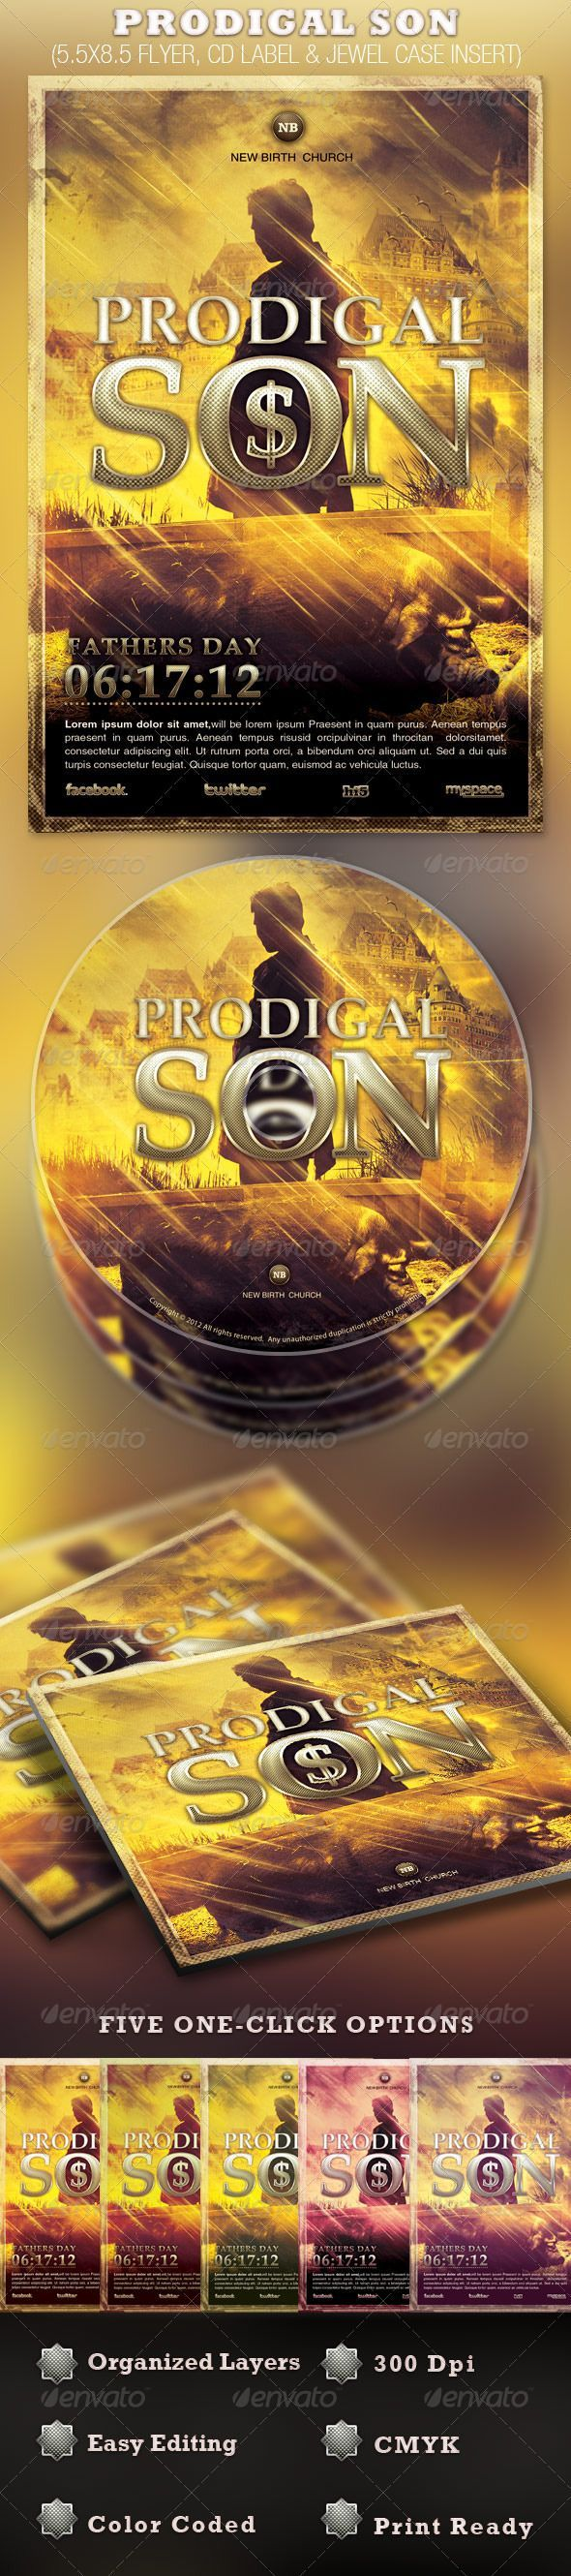 Prodigal Son Flyer and CD Template — Photoshop PSD #youth sermon #grace flyer • Available here → https://graphicriver.net/item/prodigal-son-flyer-and-cd-template/2390405?ref=pxcr